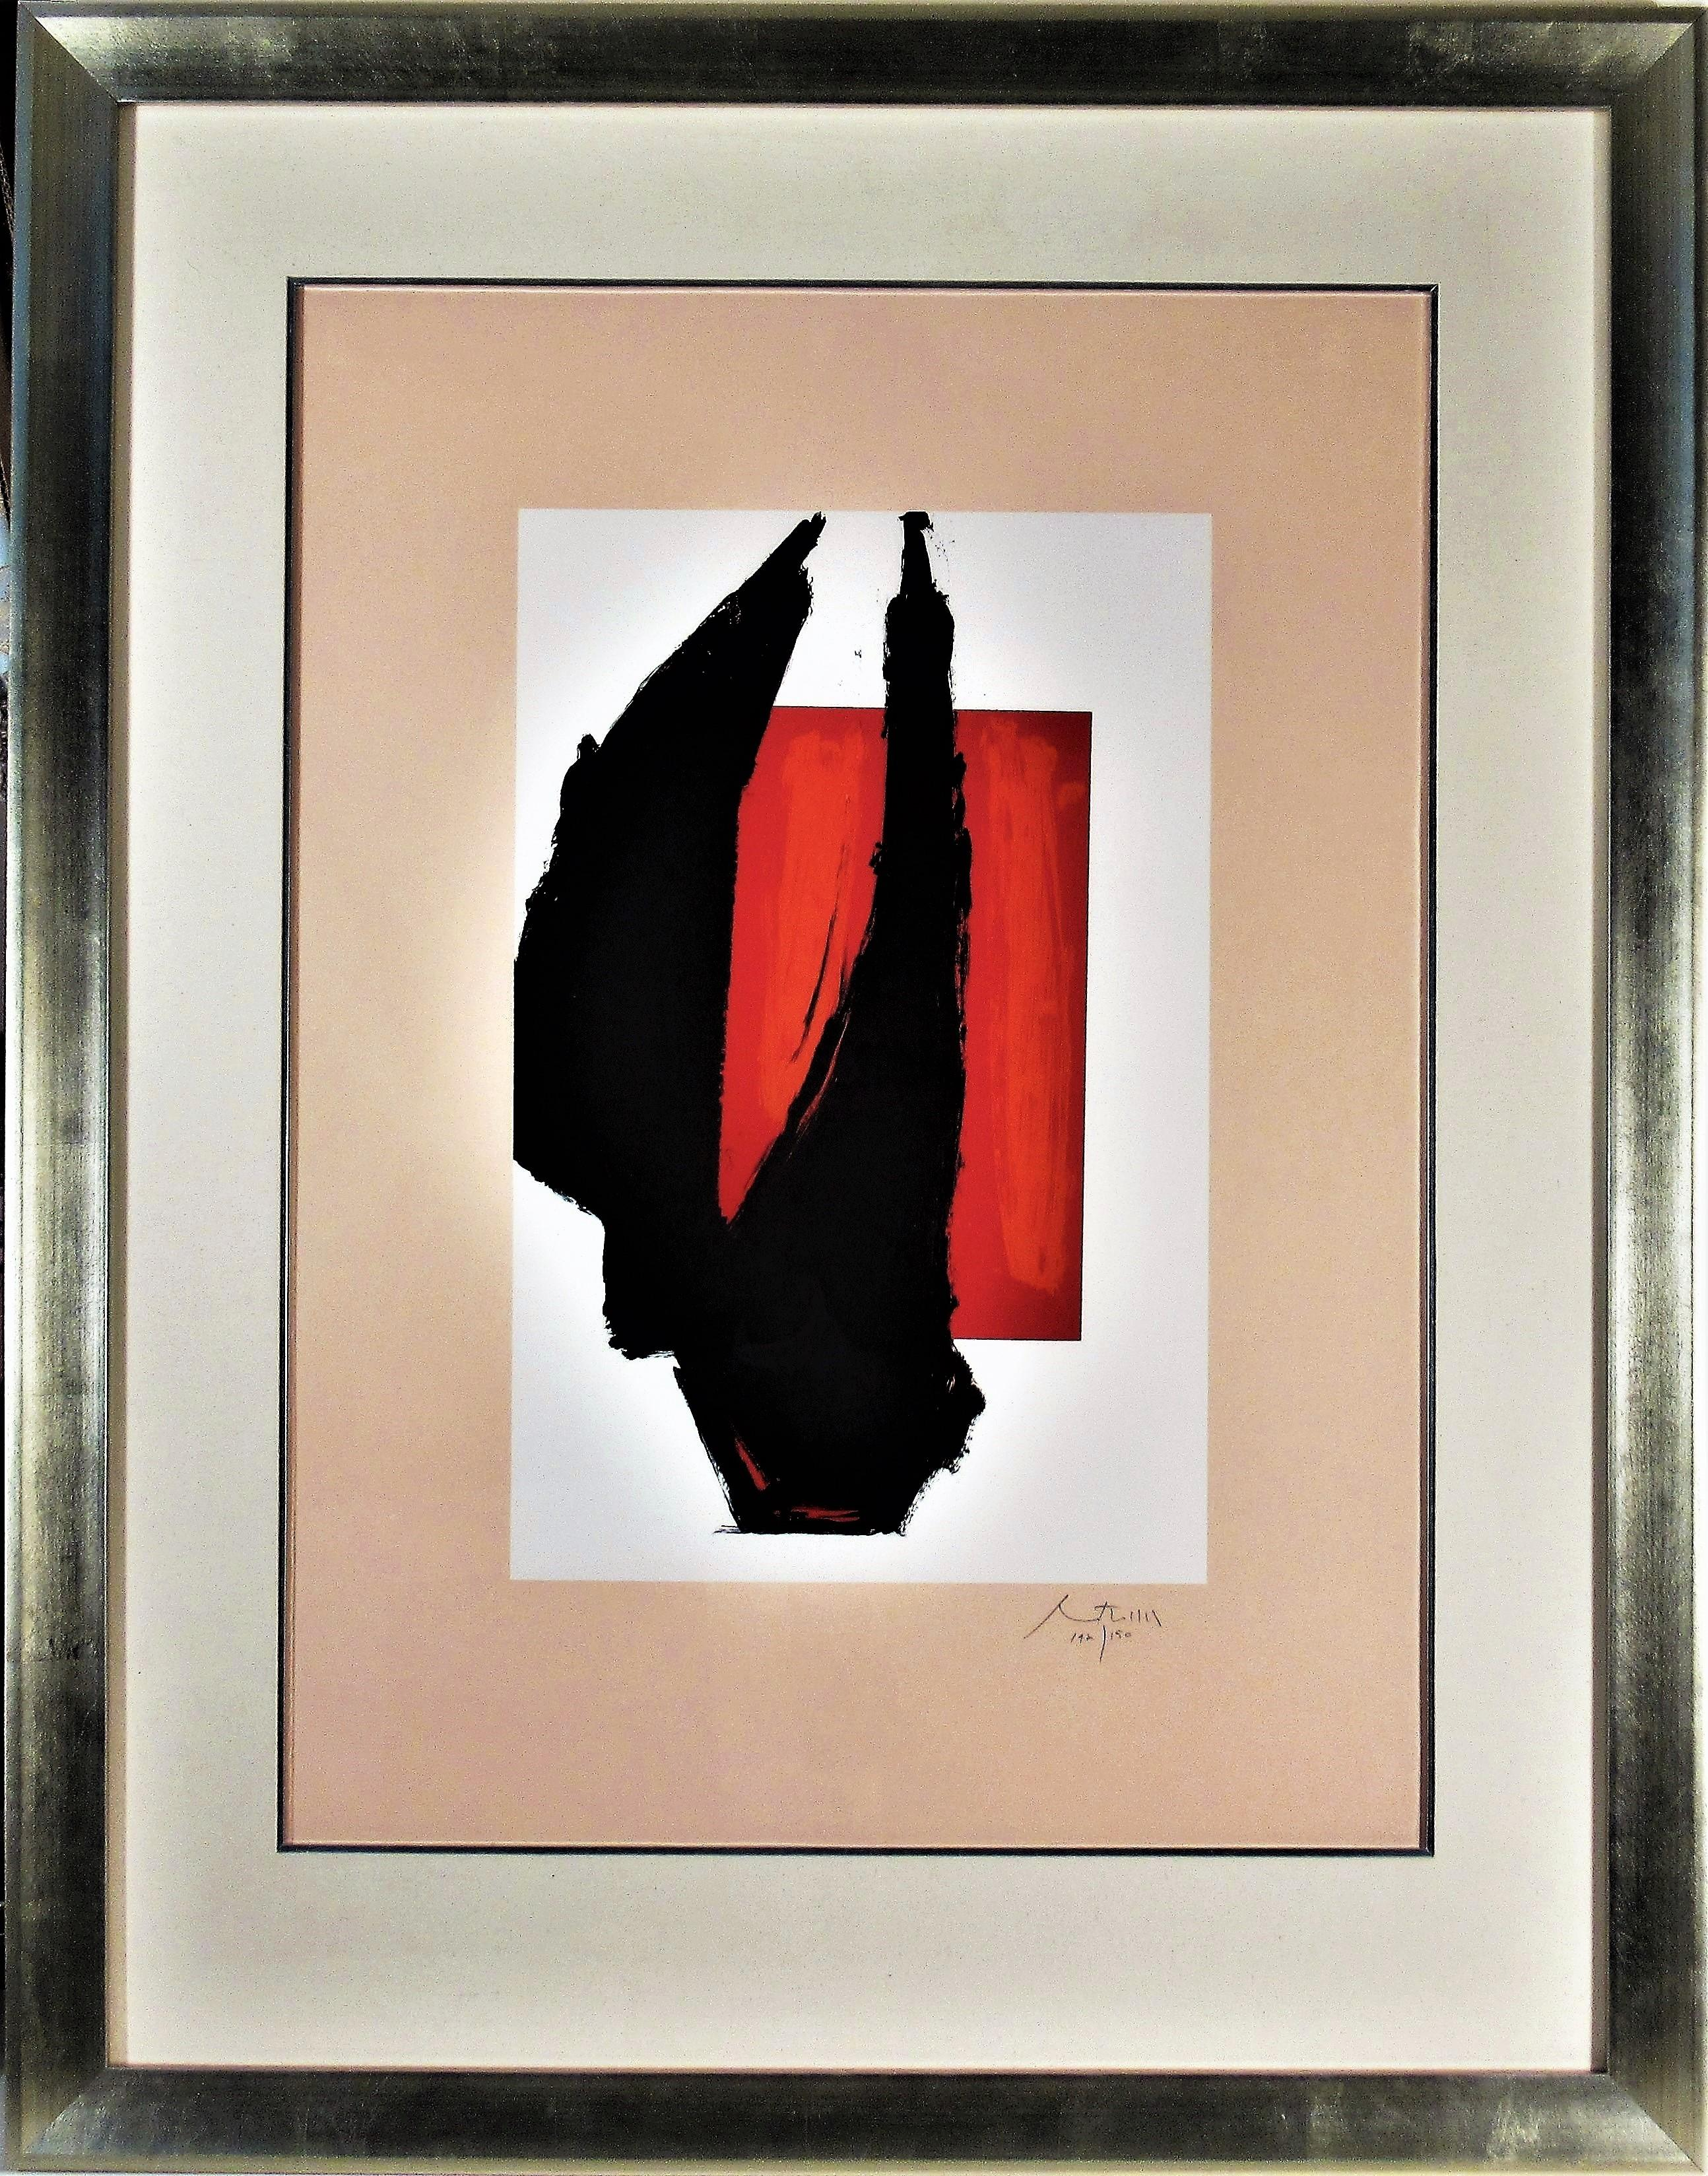 Art 1981 Chicago, large lithograph